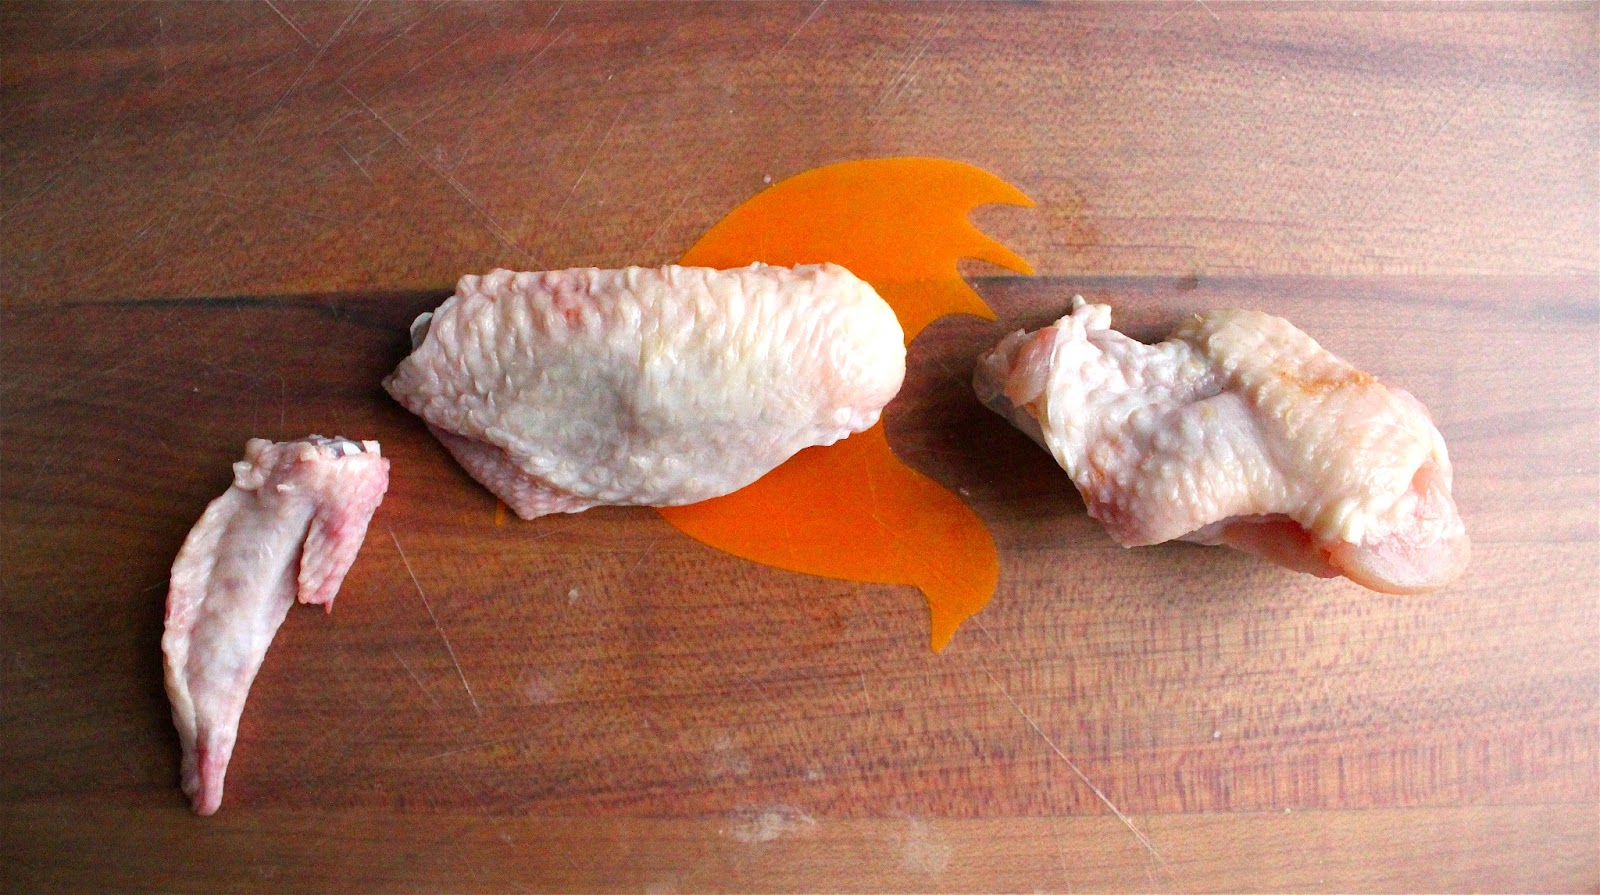 Gallery For > Raw Chicken Wing Dissection